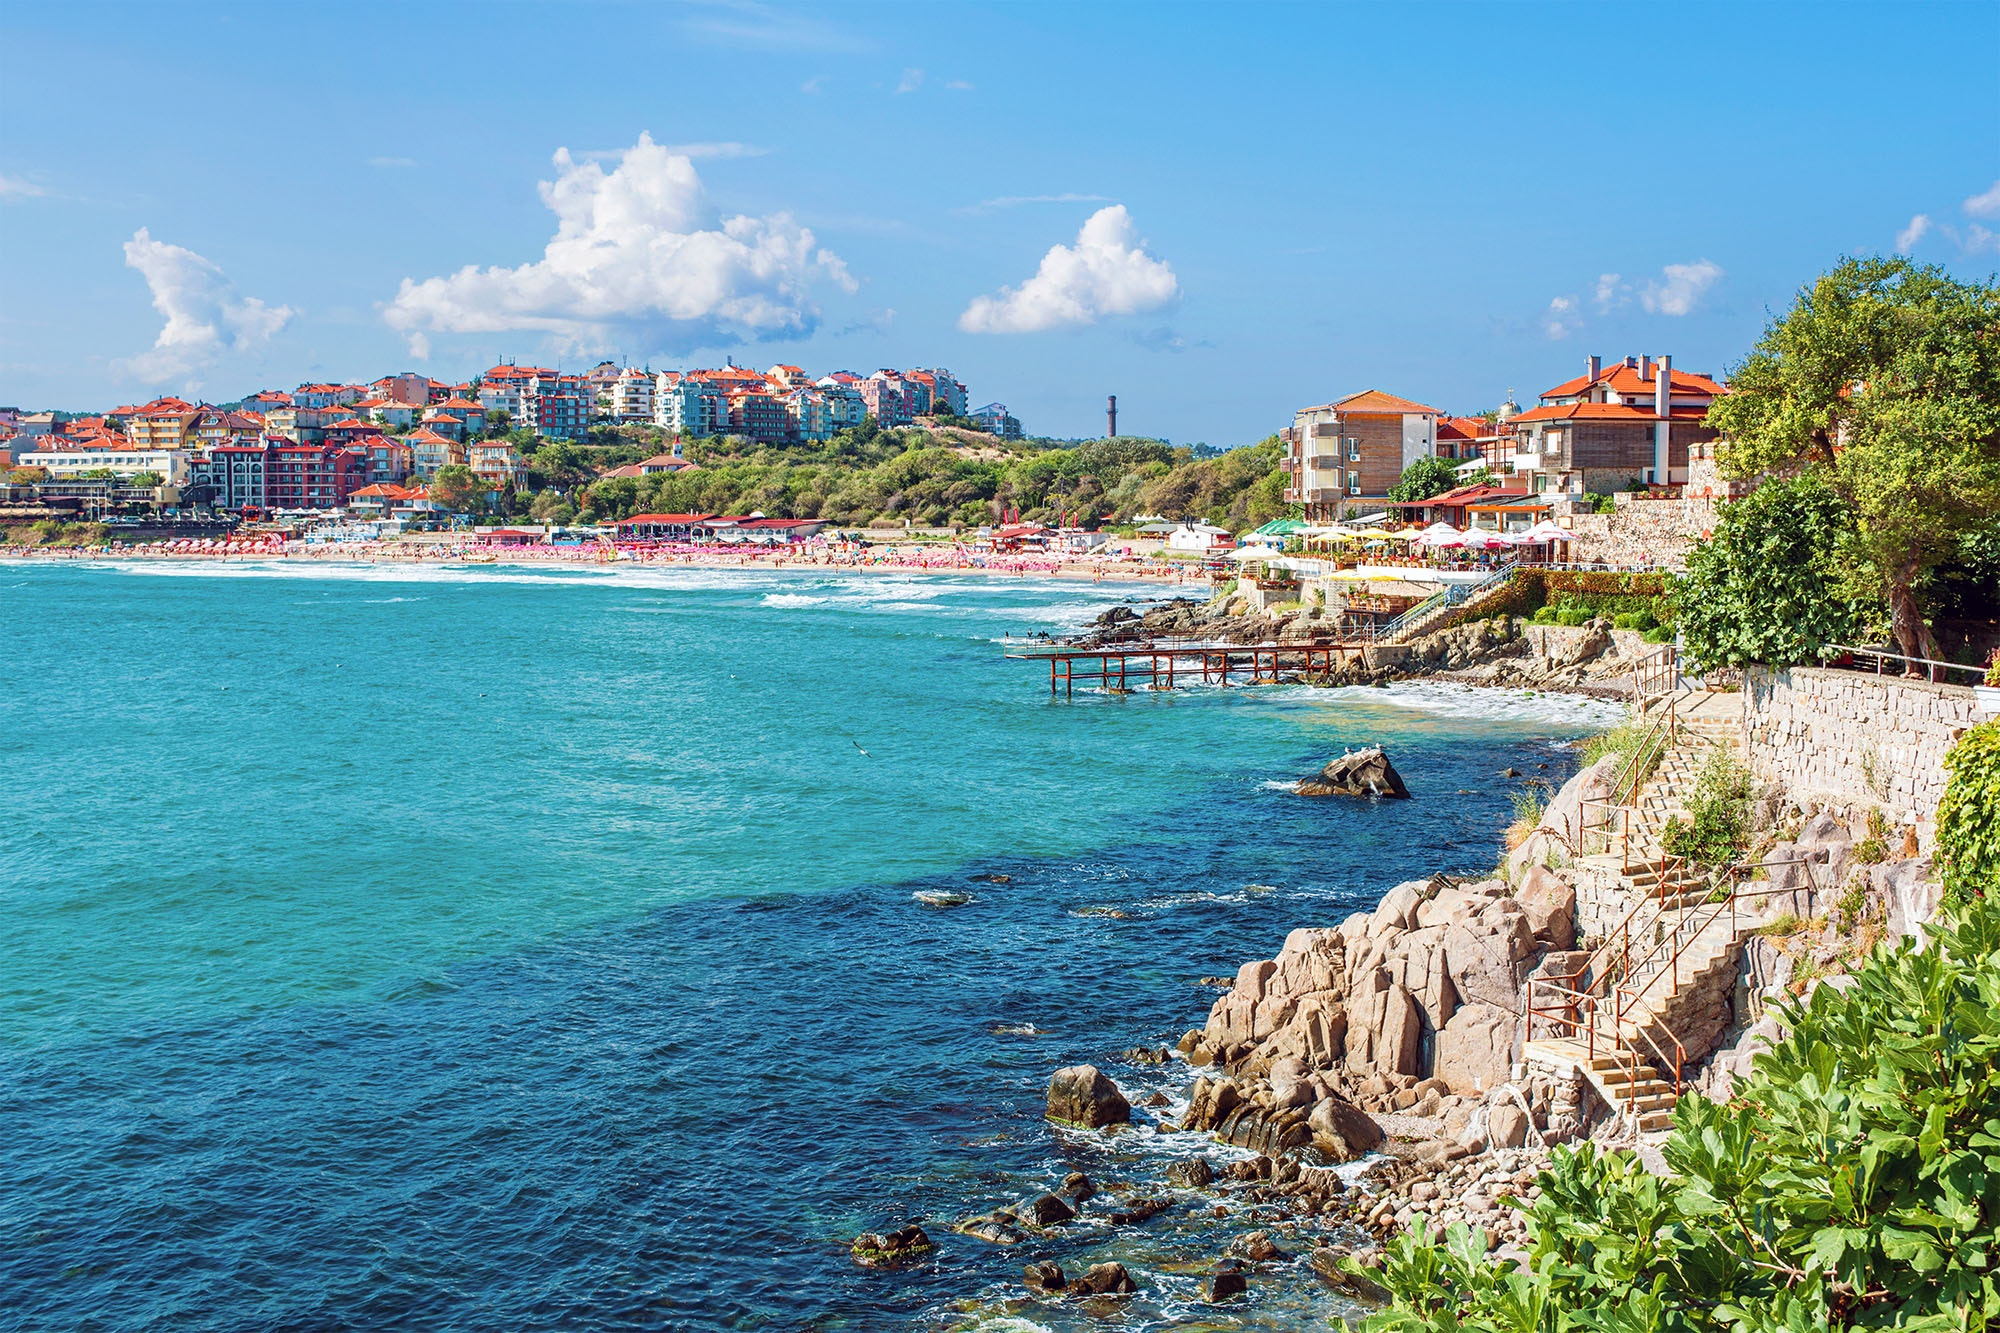 Sozopol is a favorite vacation destination for Bulgarians.